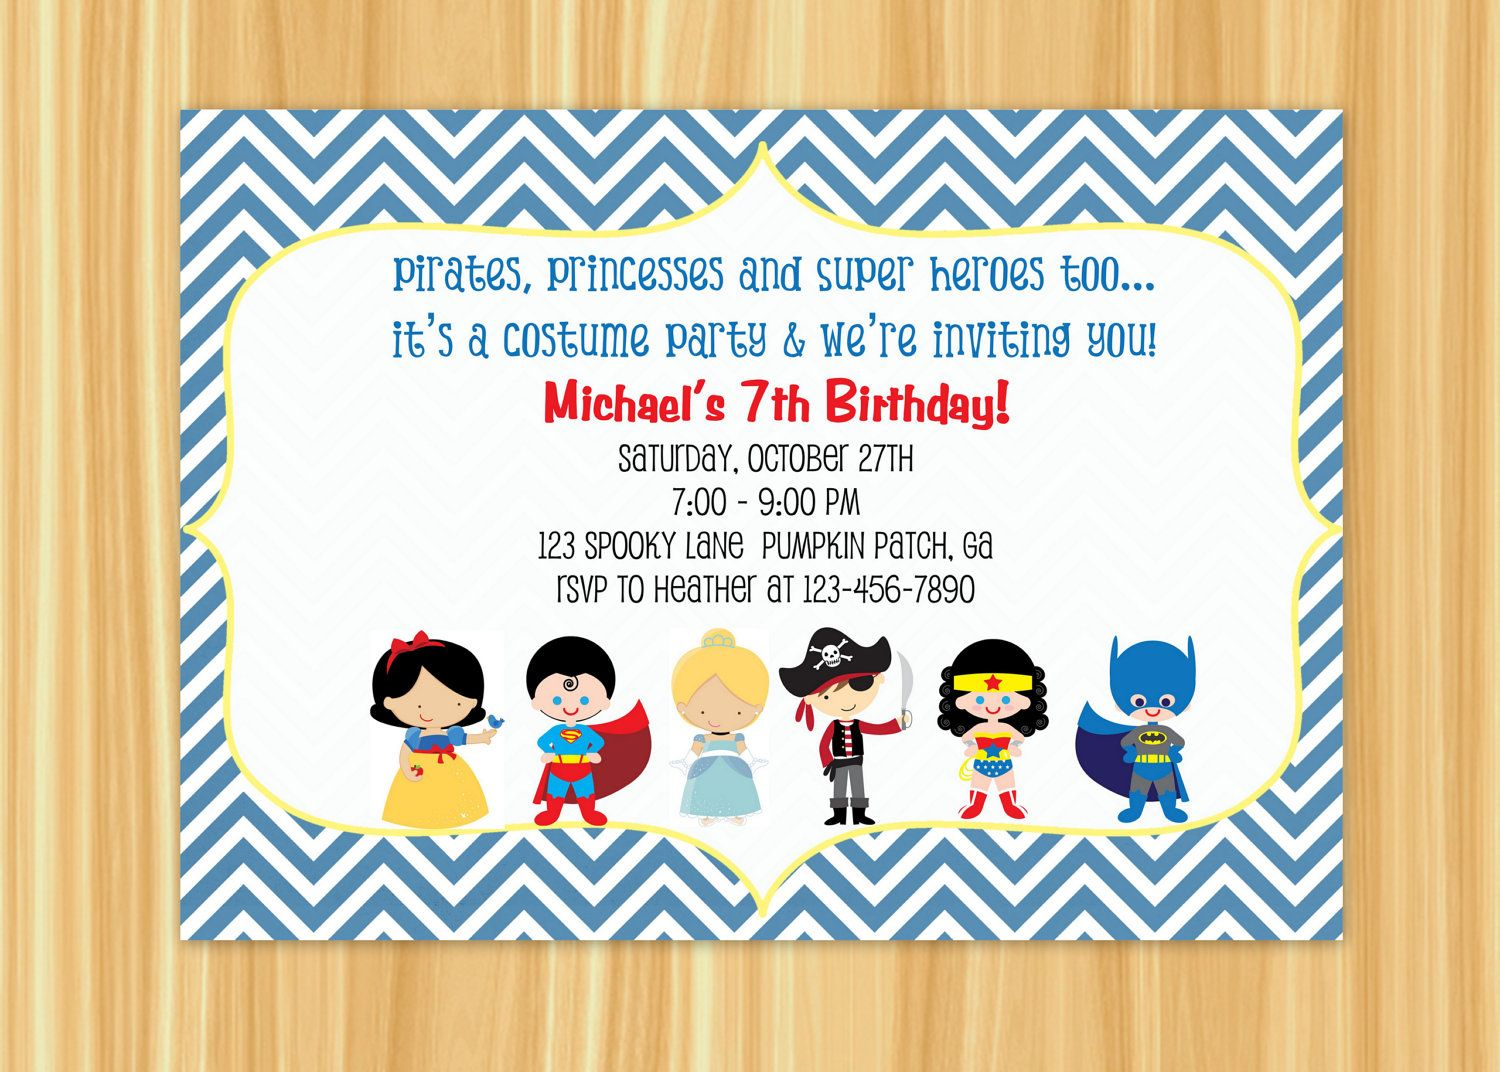 costume party birthday invitation boys halloween party printable custom printable kids costume party birthday invitation 10 00 via